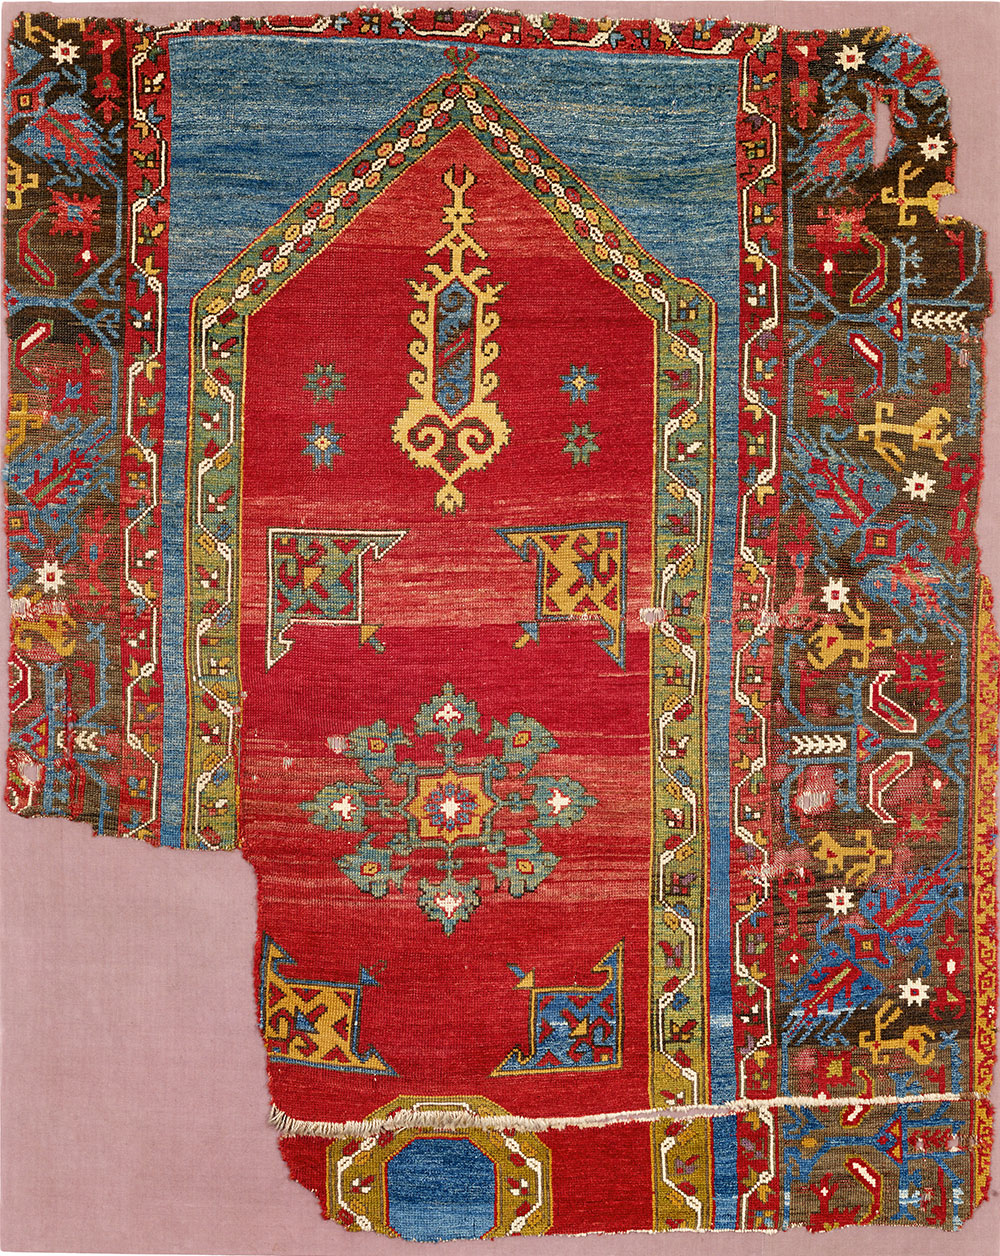 """'Bellini' keyhole niche rug fragment (and border detail), west Anatolia, ca. 1525–75. Wool pile on a wool foundation, 1.32 x 1.62 m (4' 4"""" x 5' 4""""). Kirchheim Family Collection, Hannover. Published Orient Stars, Stuttgart, 1993, pl.189"""